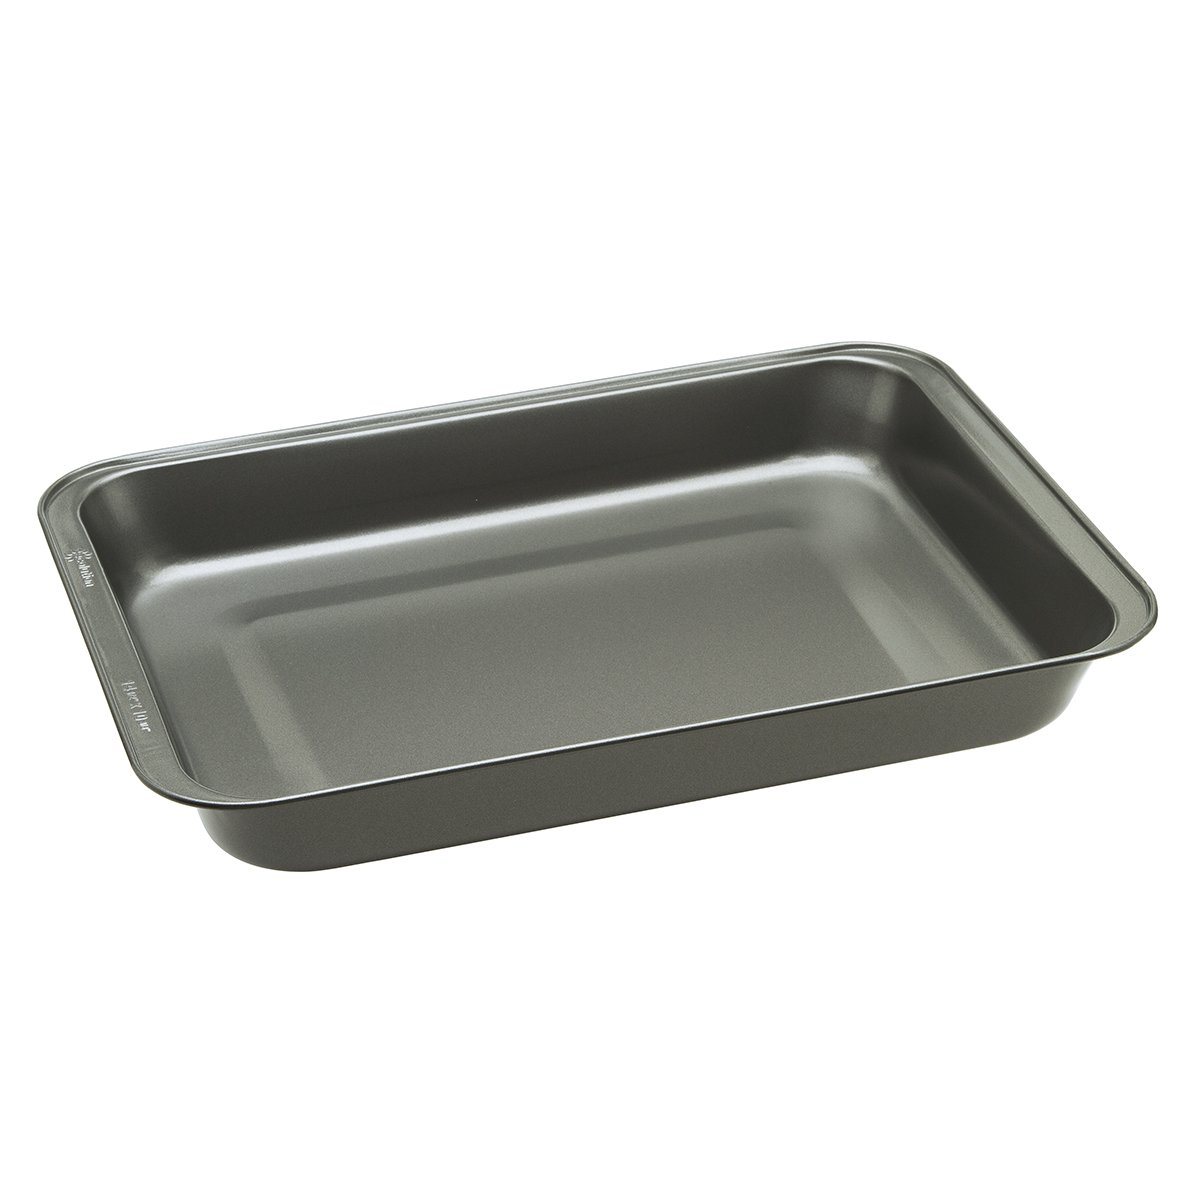 "Ecolution Bakeins Lasagna and Roasting Pan – PFOA, BPA, and PTFE Free Non-Stick Coating – Heavy Duty Carbon Steel – Dishwasher Safe – Gray – 14.5"" x 10.375"" x 1.9375"""